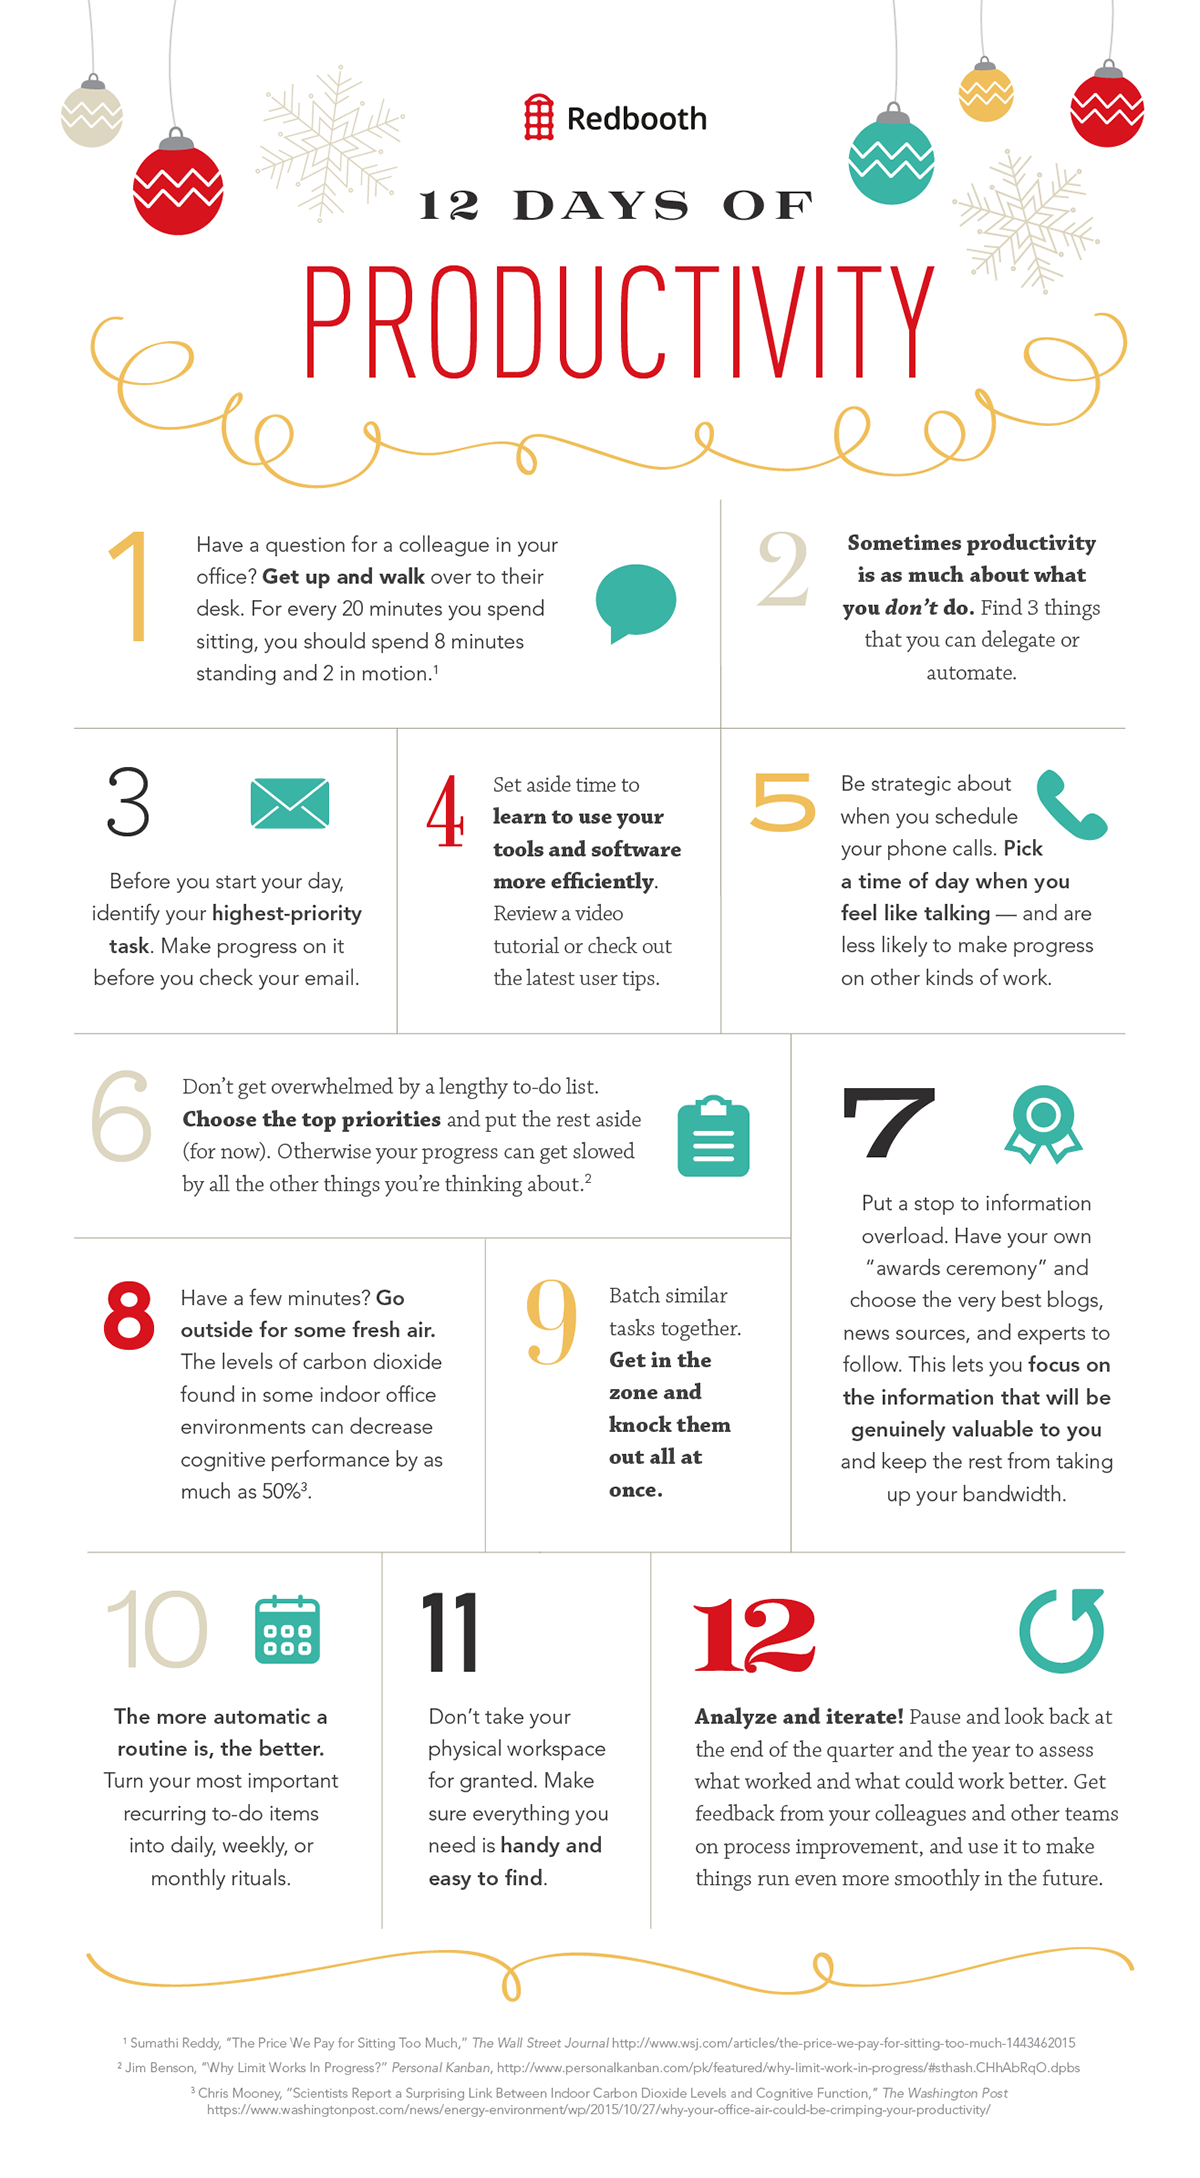 12 Days of Productivity infographic